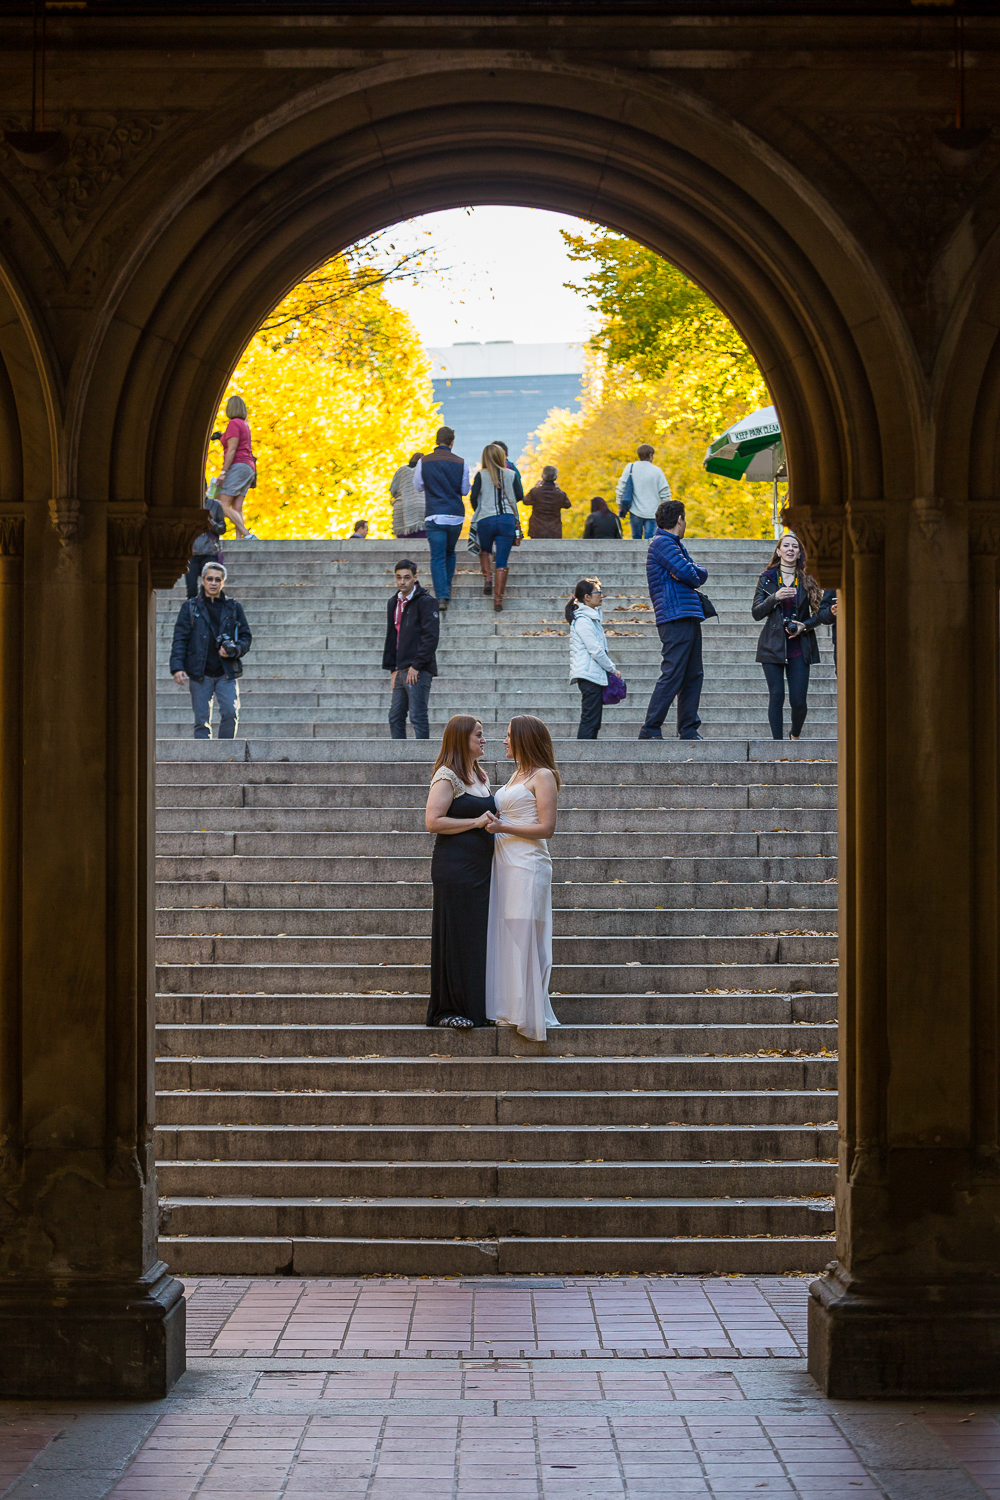 Central-park-wedding-photography-NYC-8.jpg